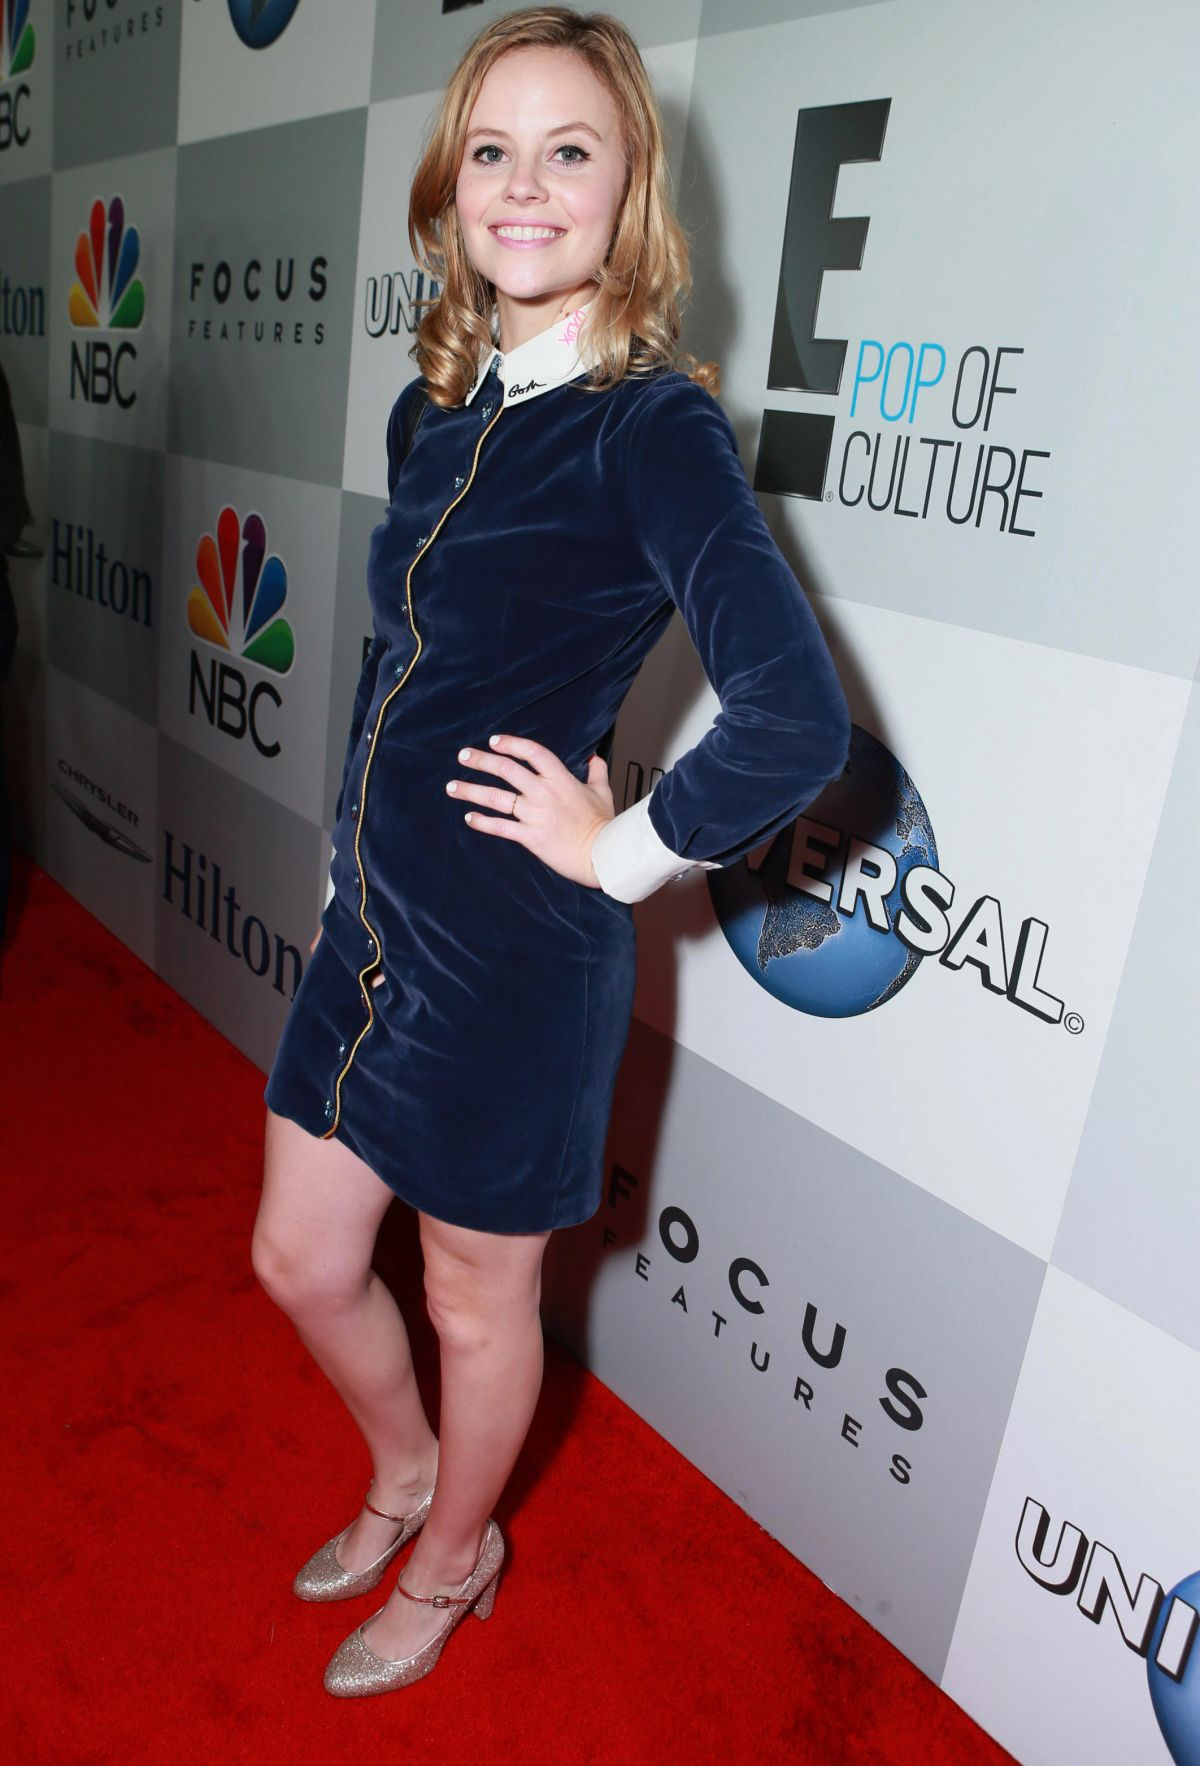 SARAH RAMOS at NBC Golden Globes Party in Beverly Hills